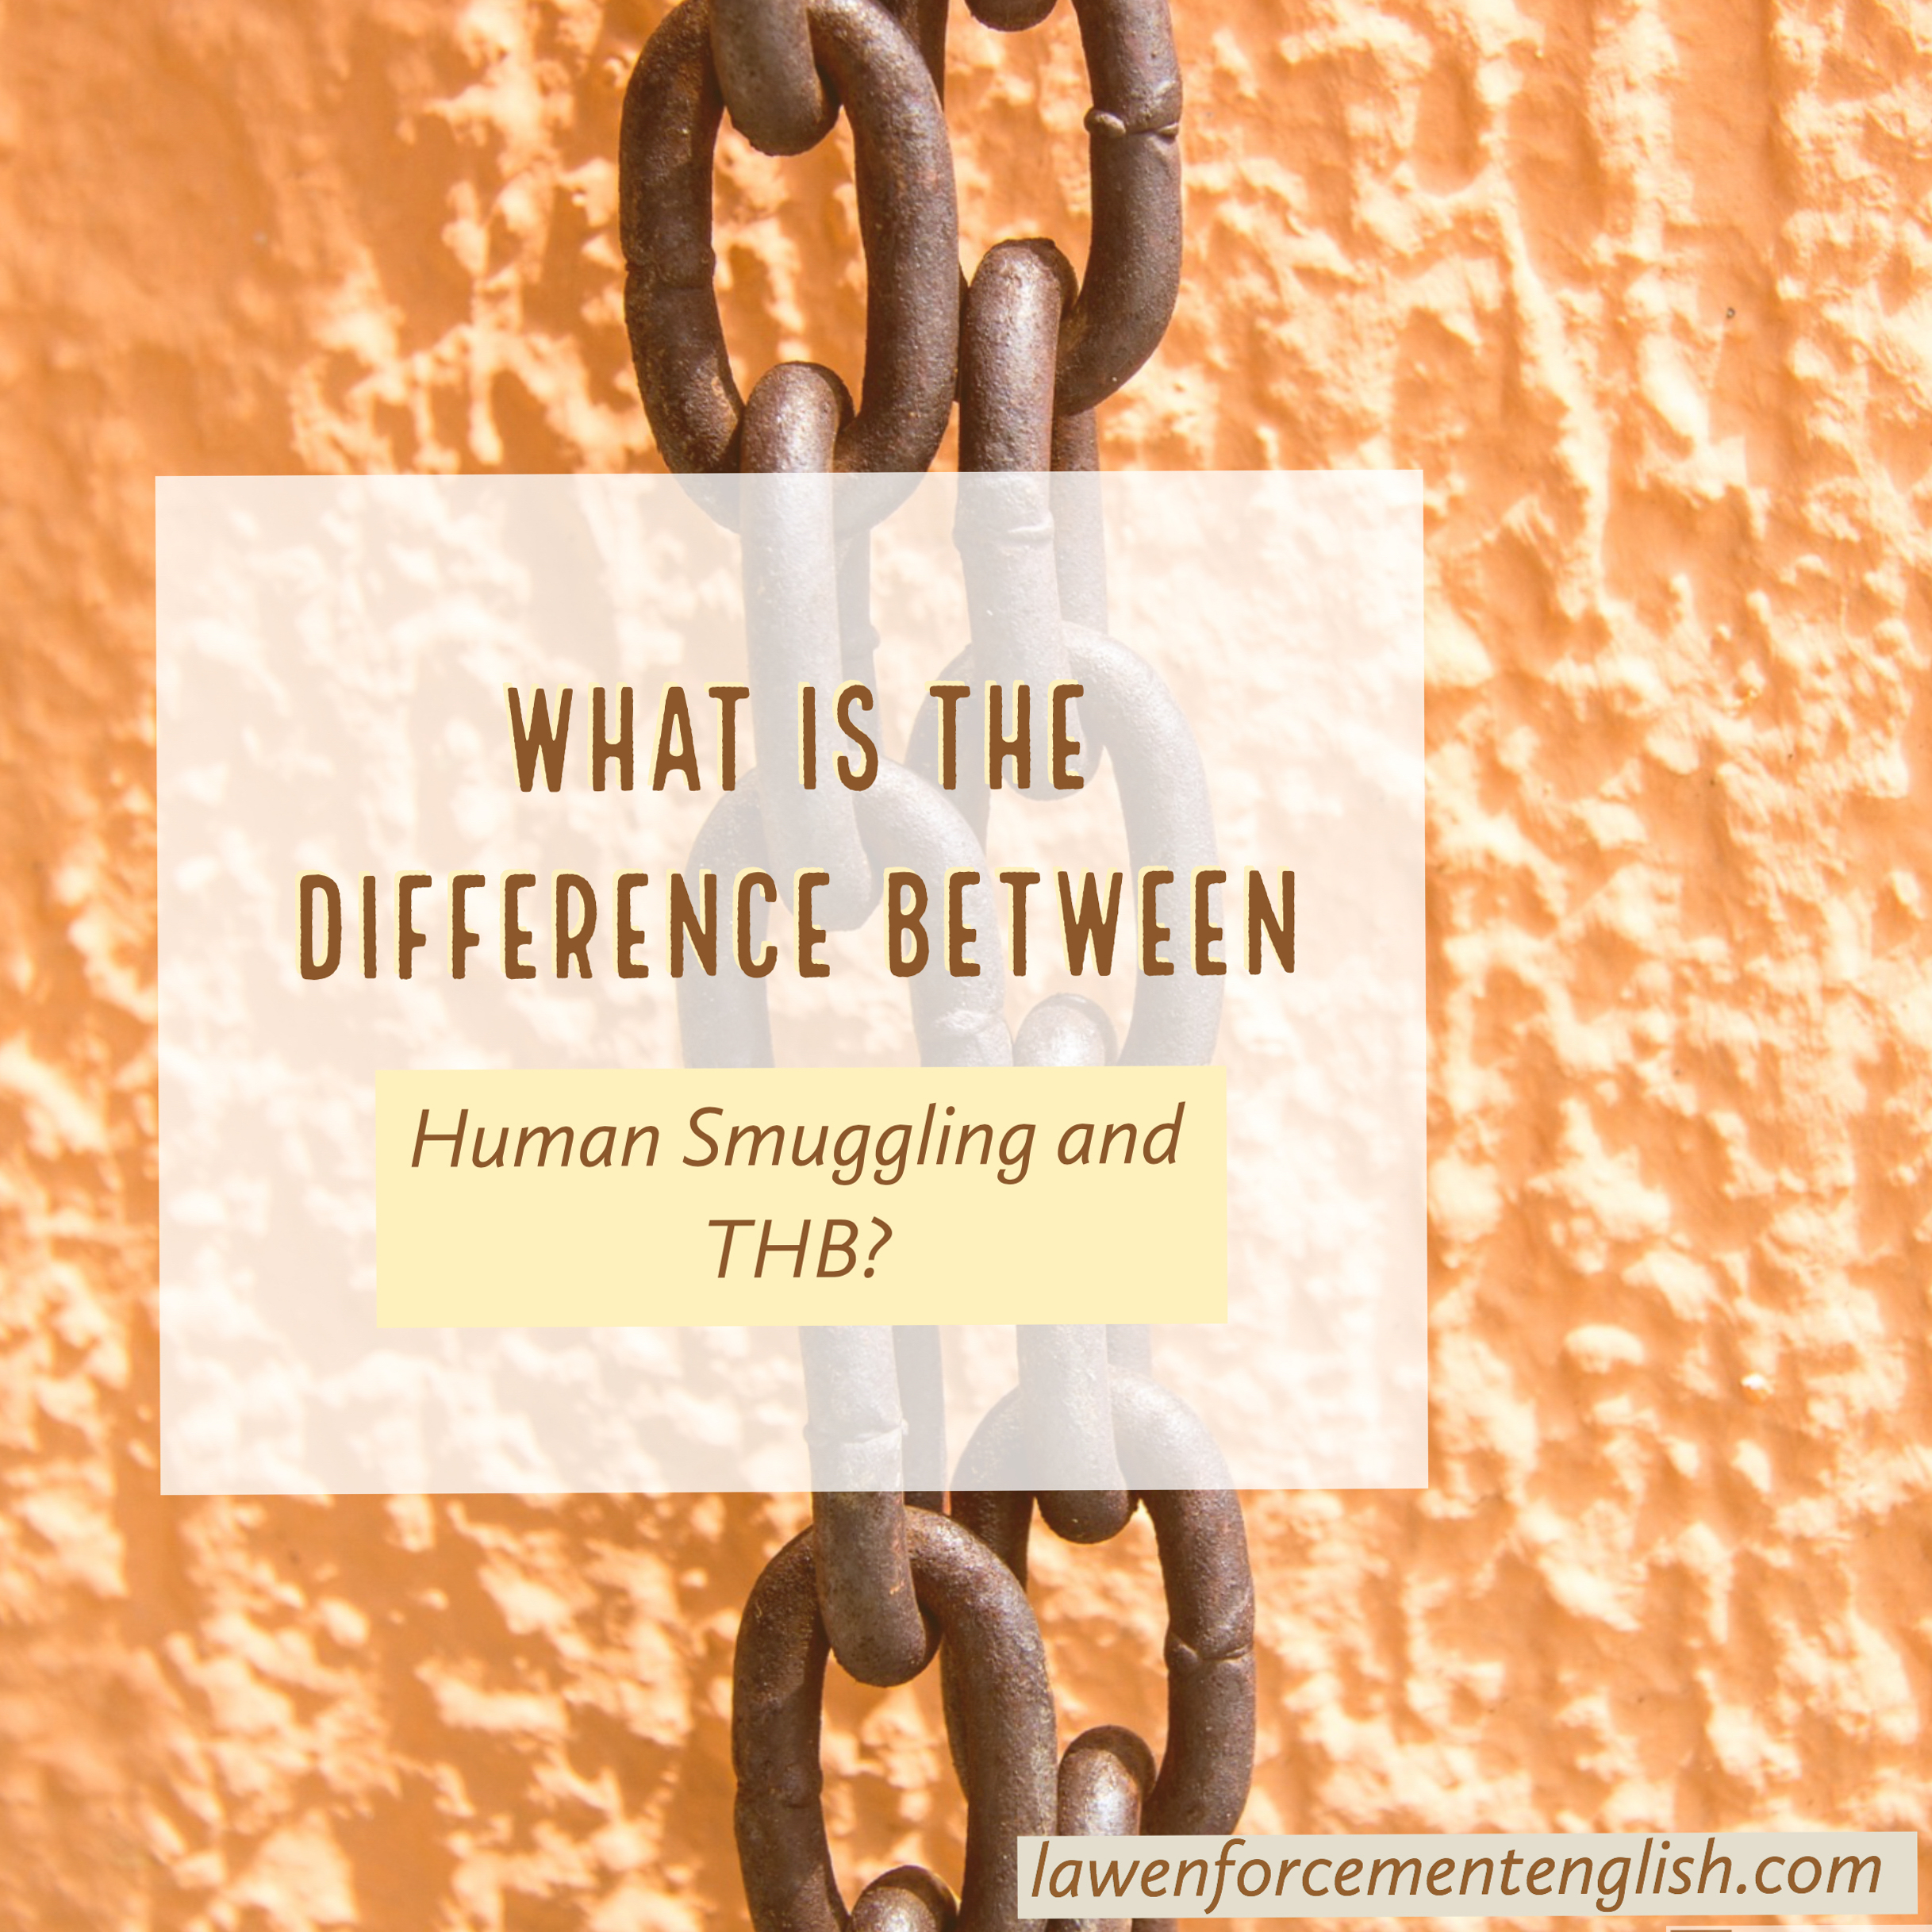 Human Smuggling and THB – What is the Difference?